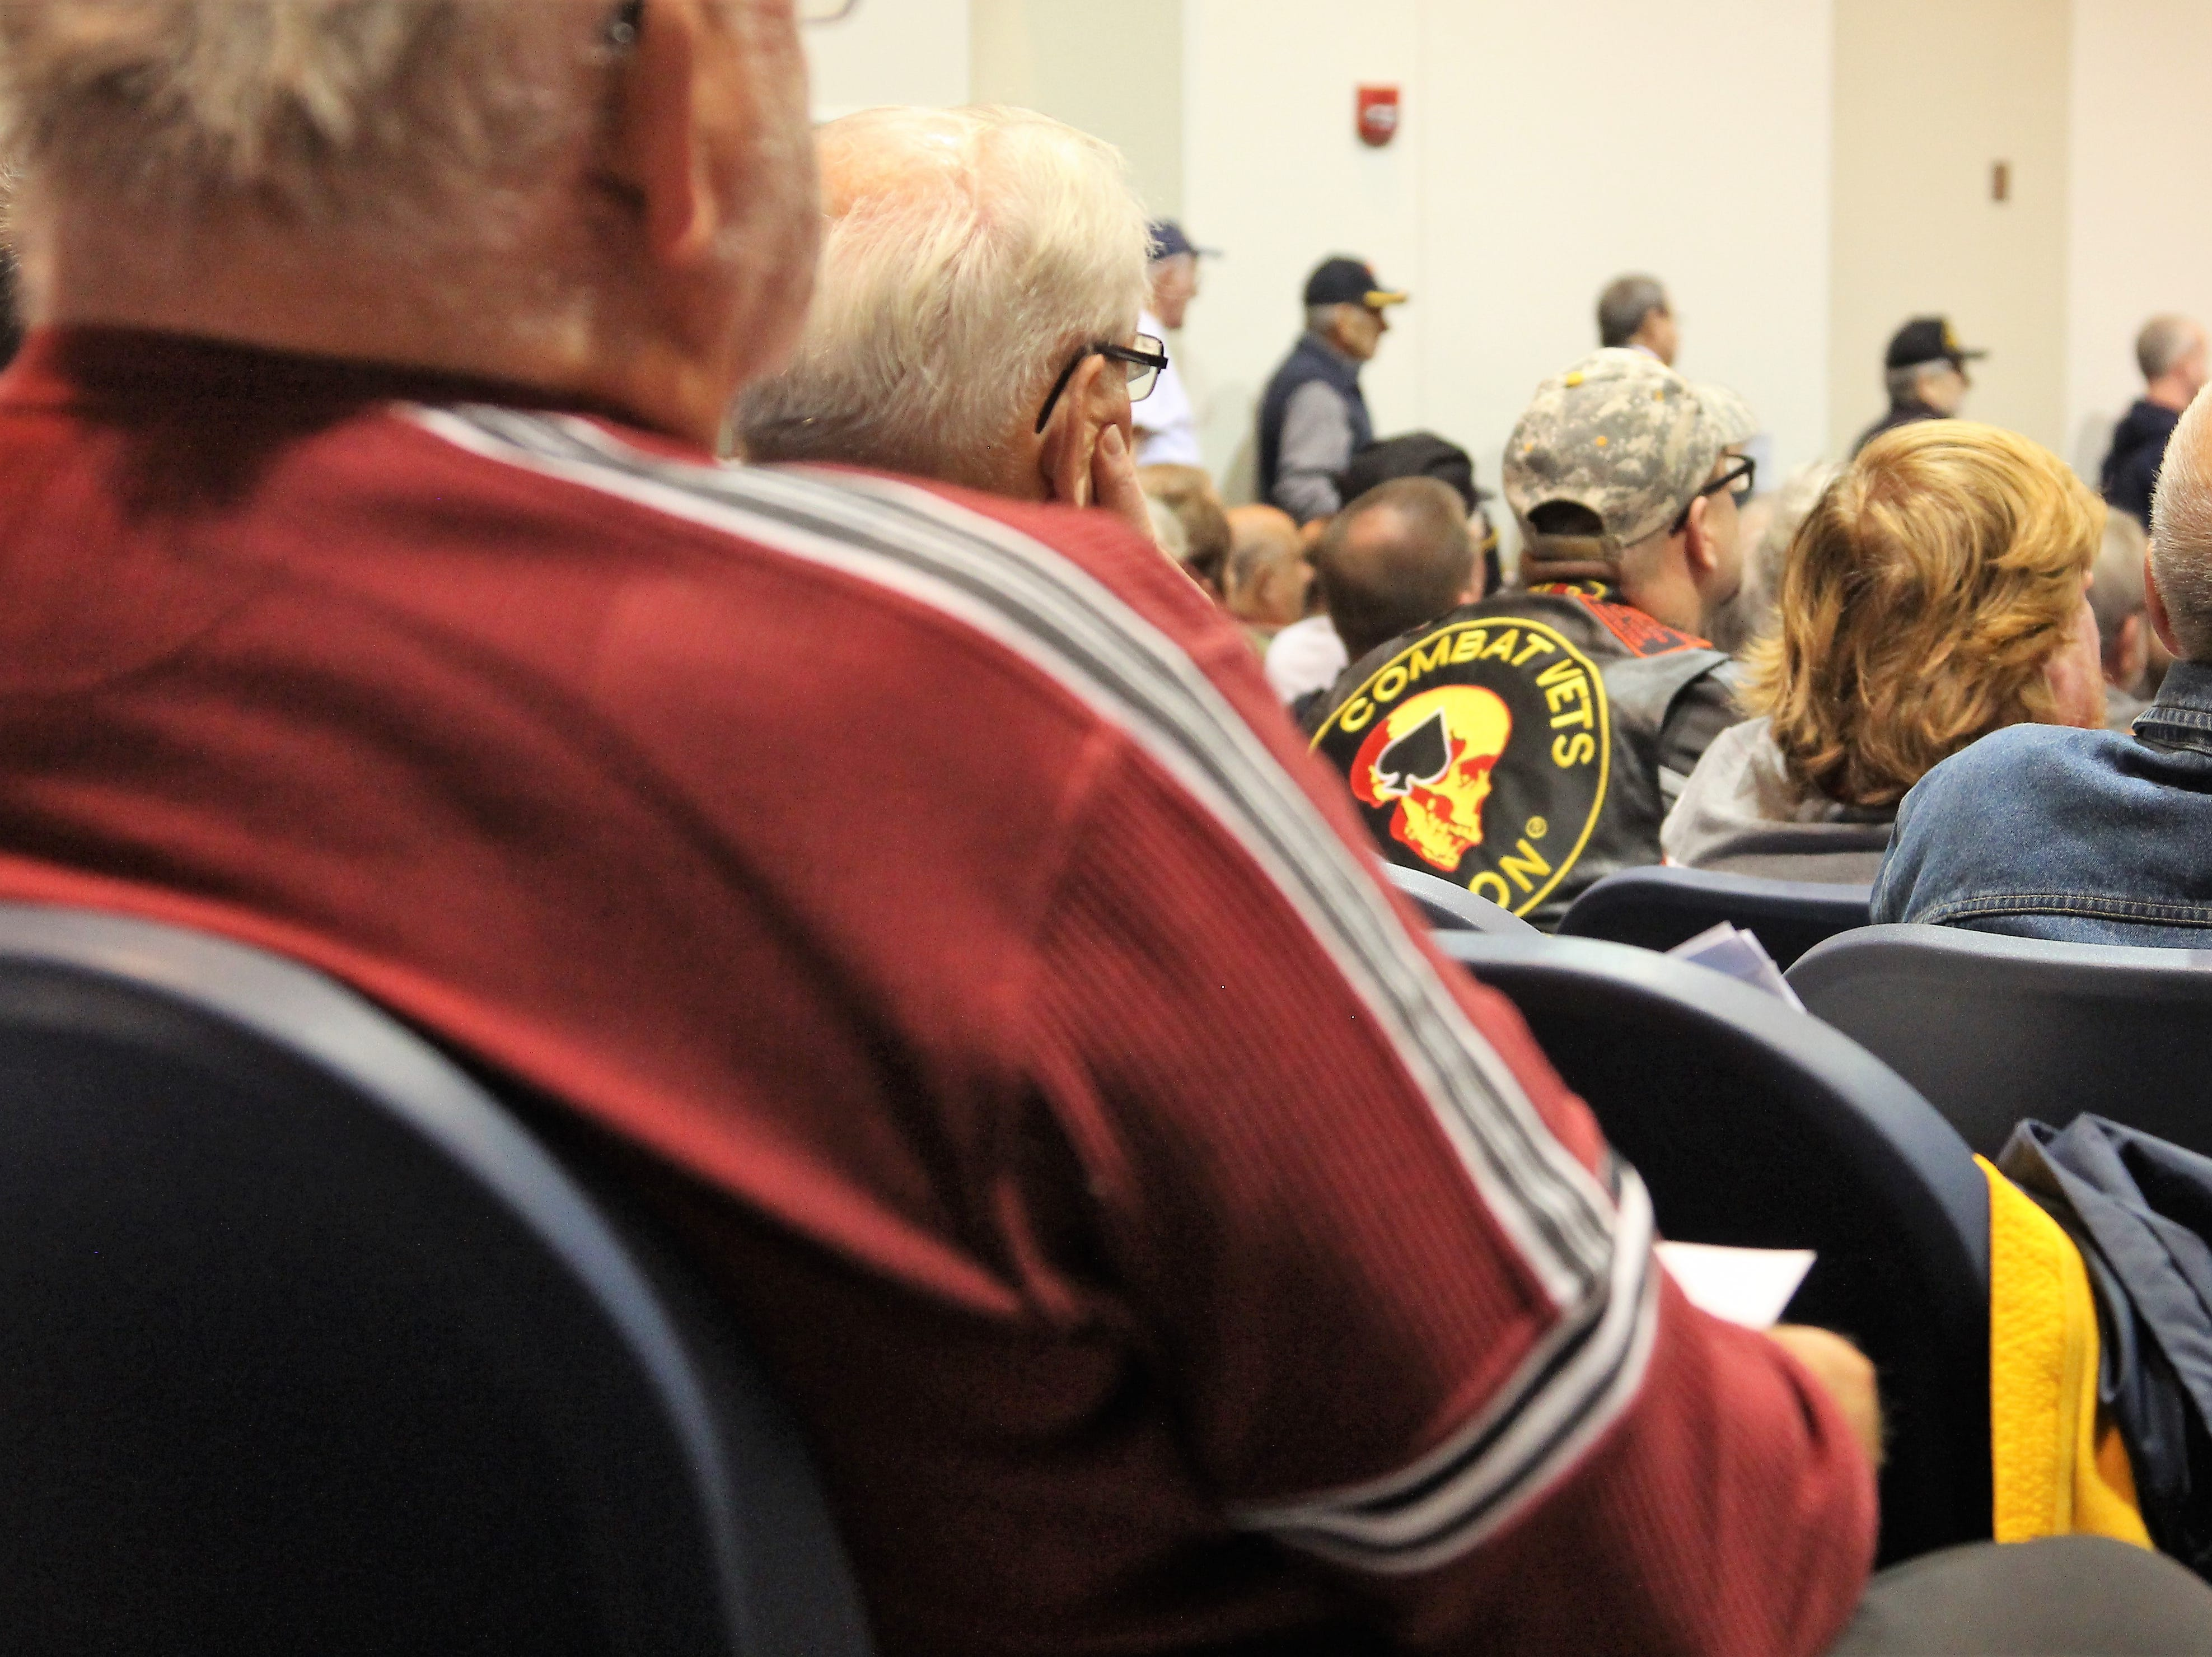 On Tuesday, students at River Valley High School honored Marion County veterans with medals and speeches following Veterans Day.